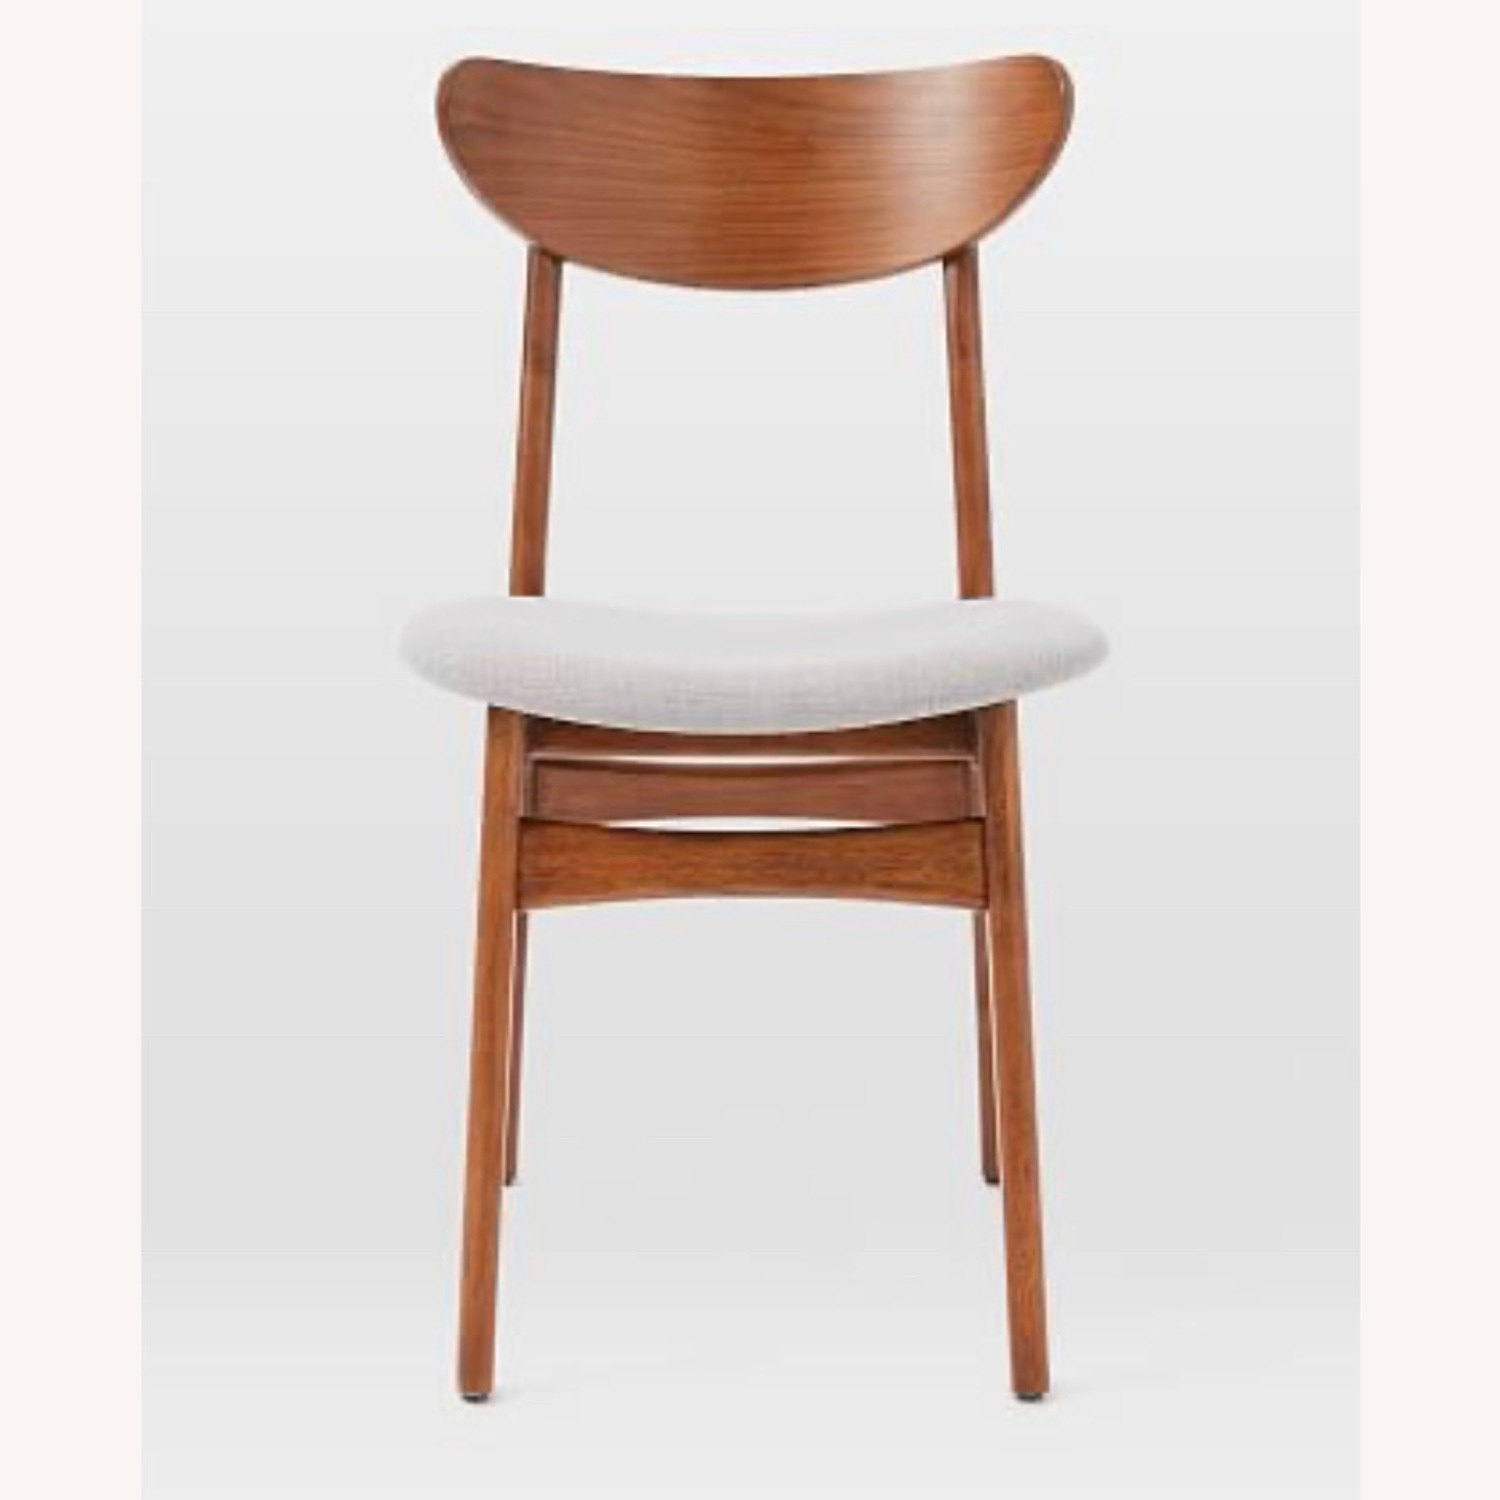 West Elm Classic Cafe Dining Chairs Set of 2 - image-2